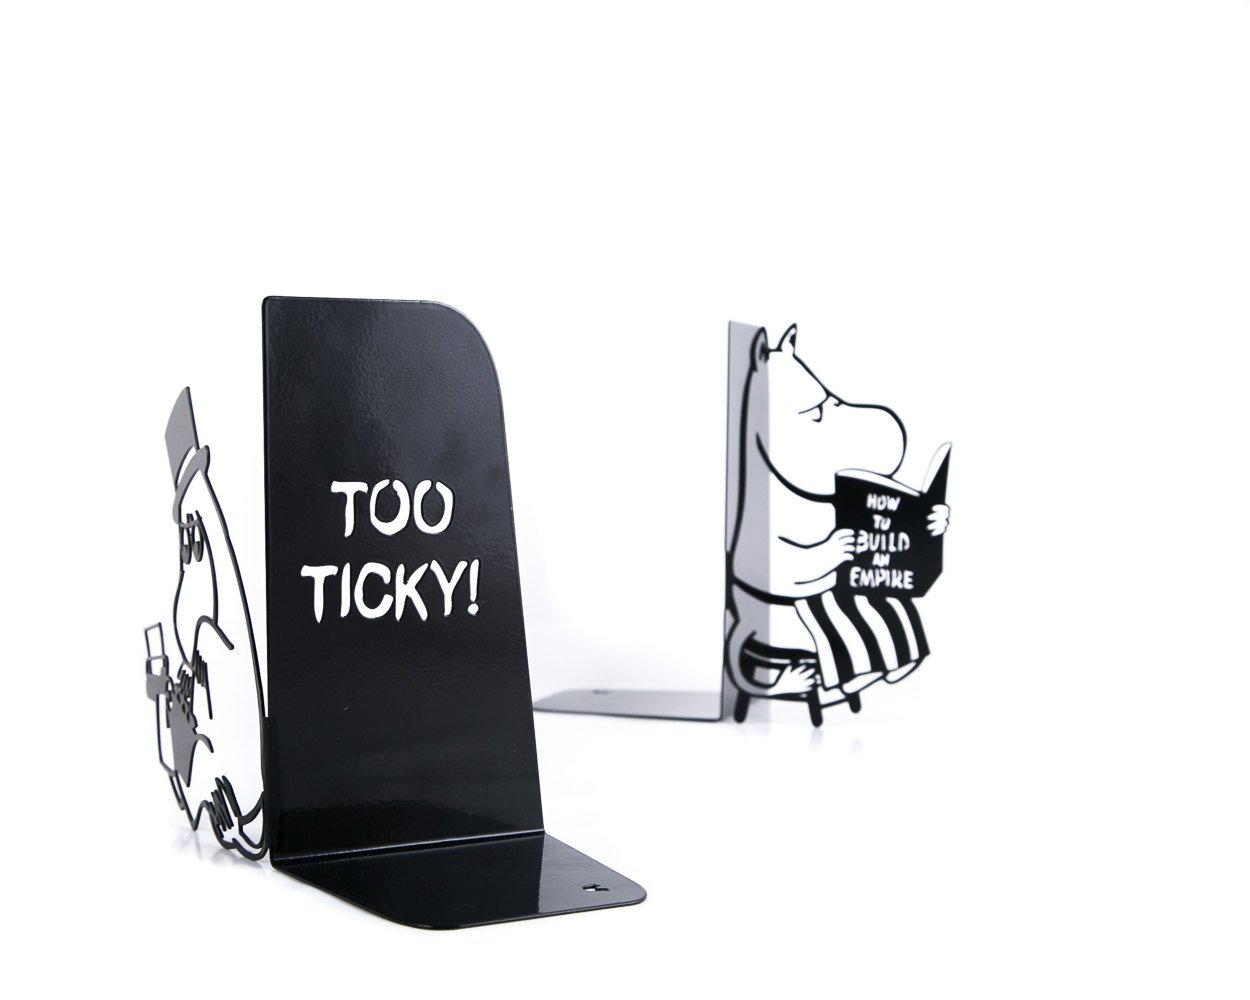 Nursery perfect bookends - Moomintroll // The Moomins - artistic decor for nursery // functional shelf decor for kid's room // FREE SHIPPING - Design Atelier Article